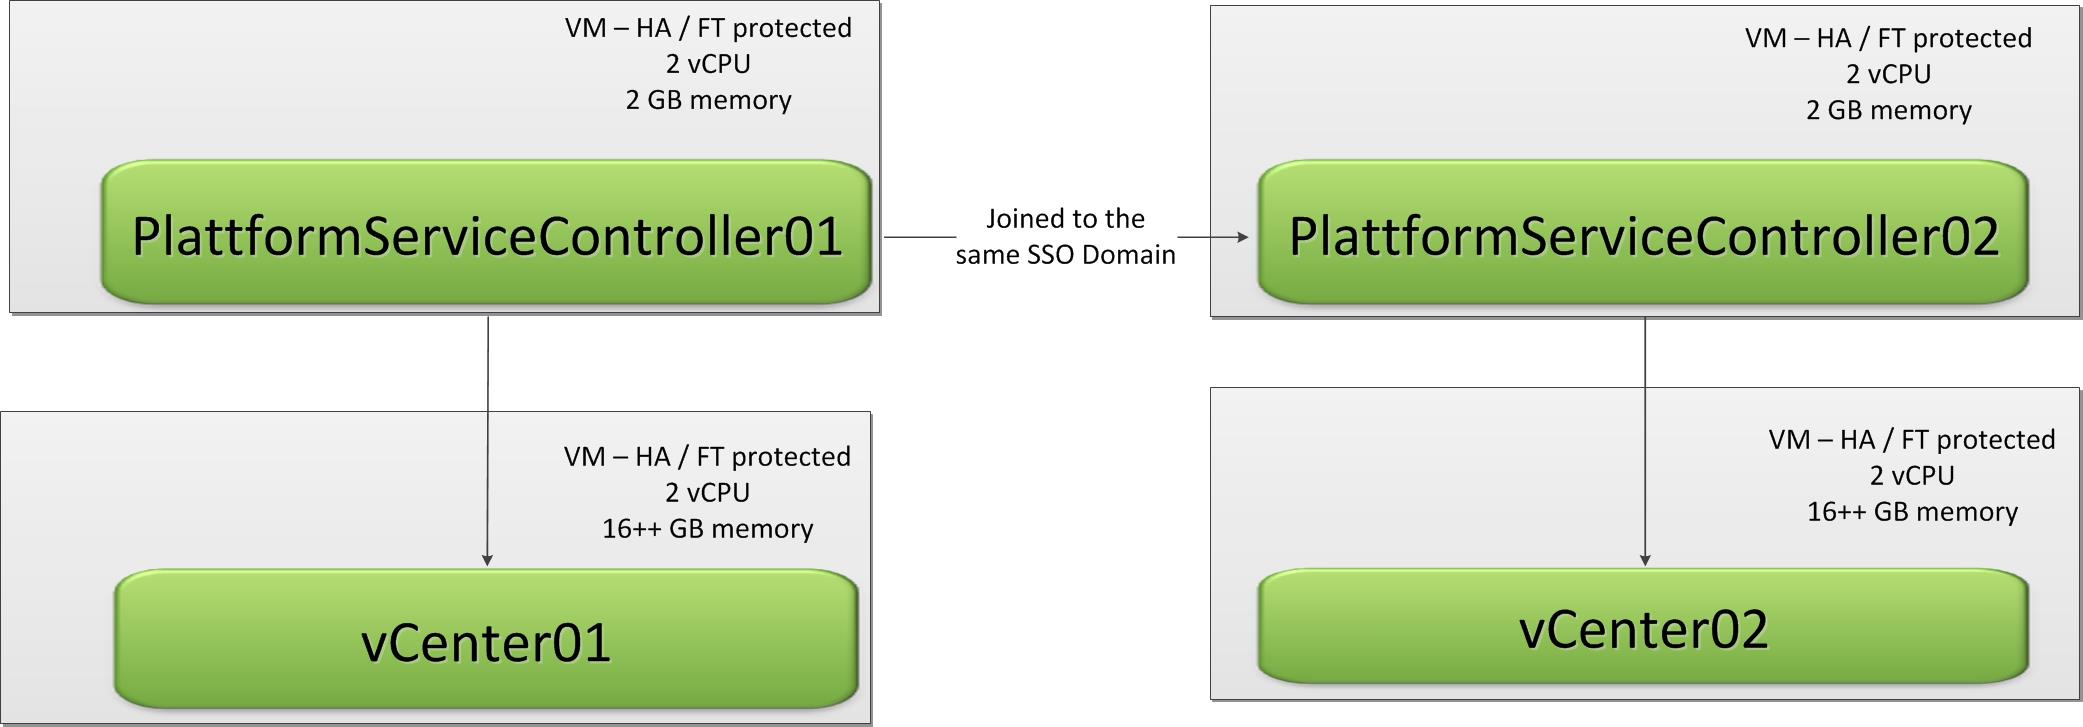 vSphere Replication 6 0 part 3: enhanced linked mode, backup